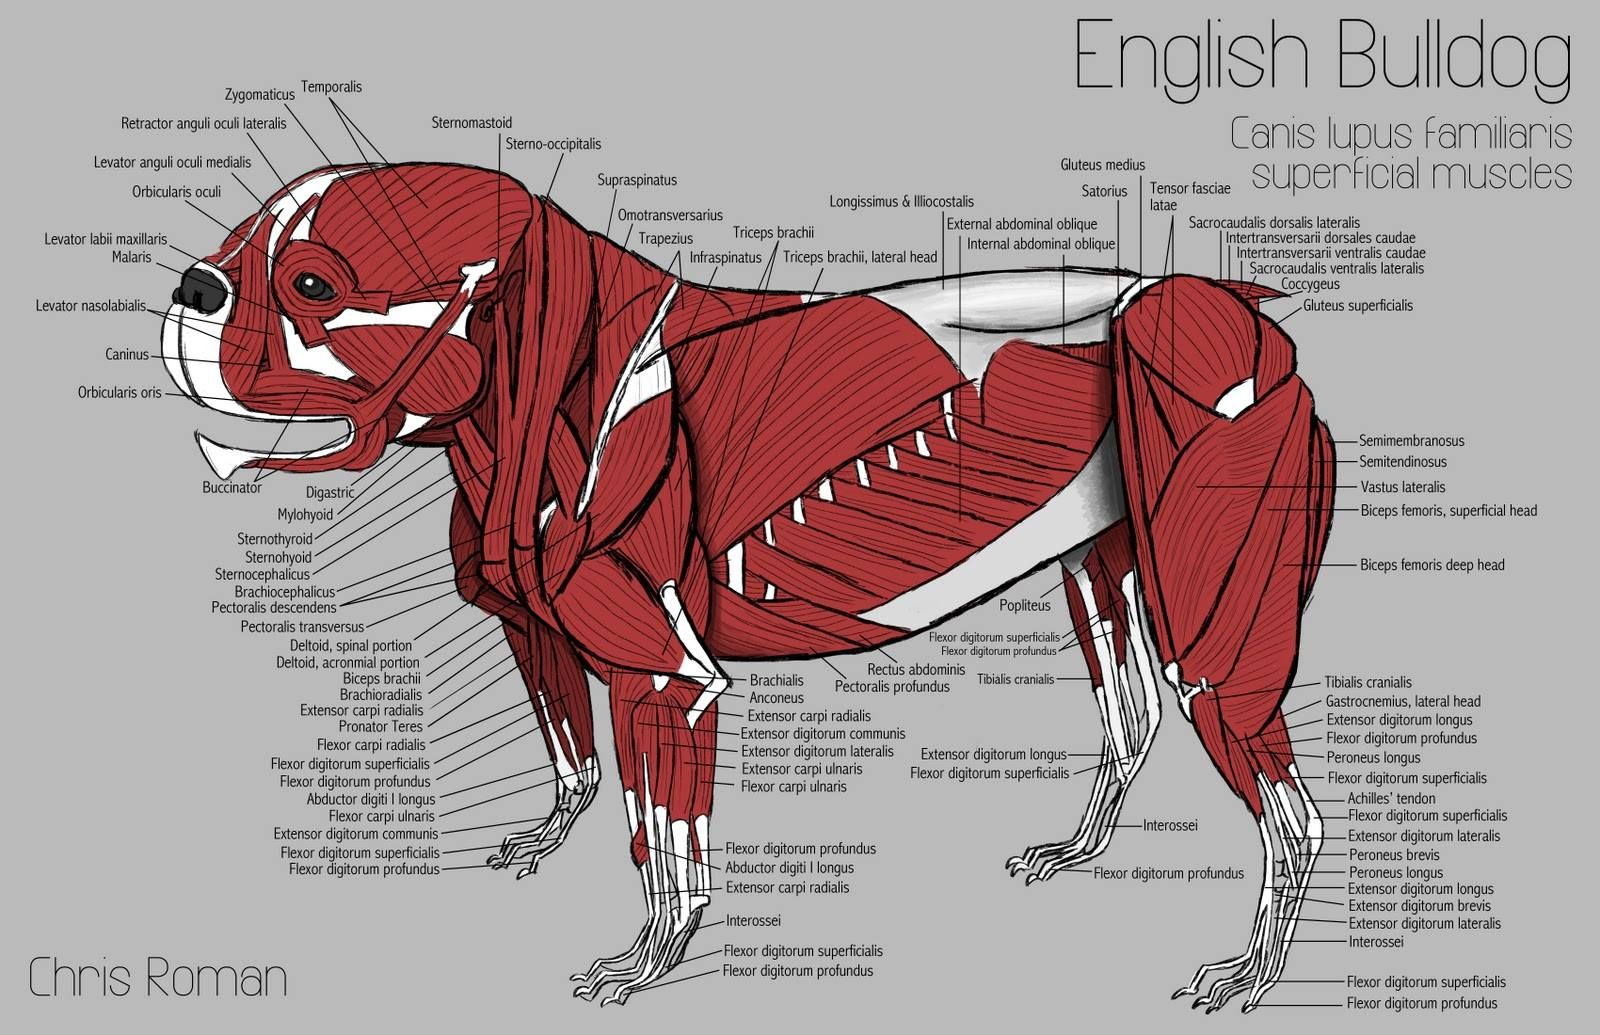 small resolution of the superficial muscles of the english bulldog